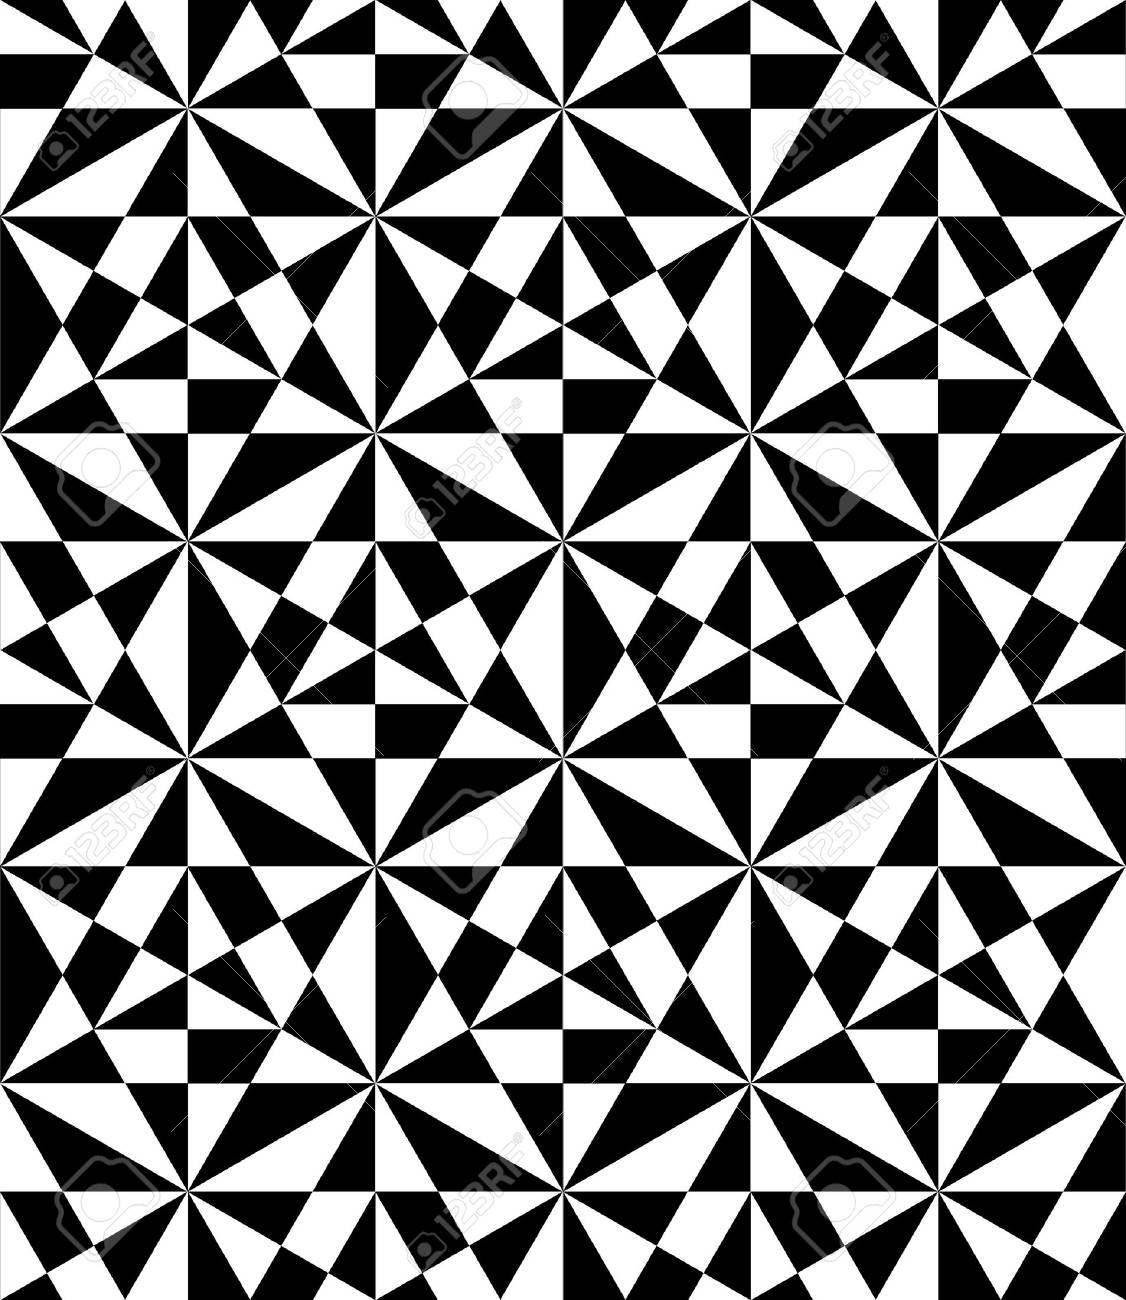 Vector modern seamless pattern, black and white print textile with illusion, abstract texture, monochrome fashion design Stock Vector - 43898340